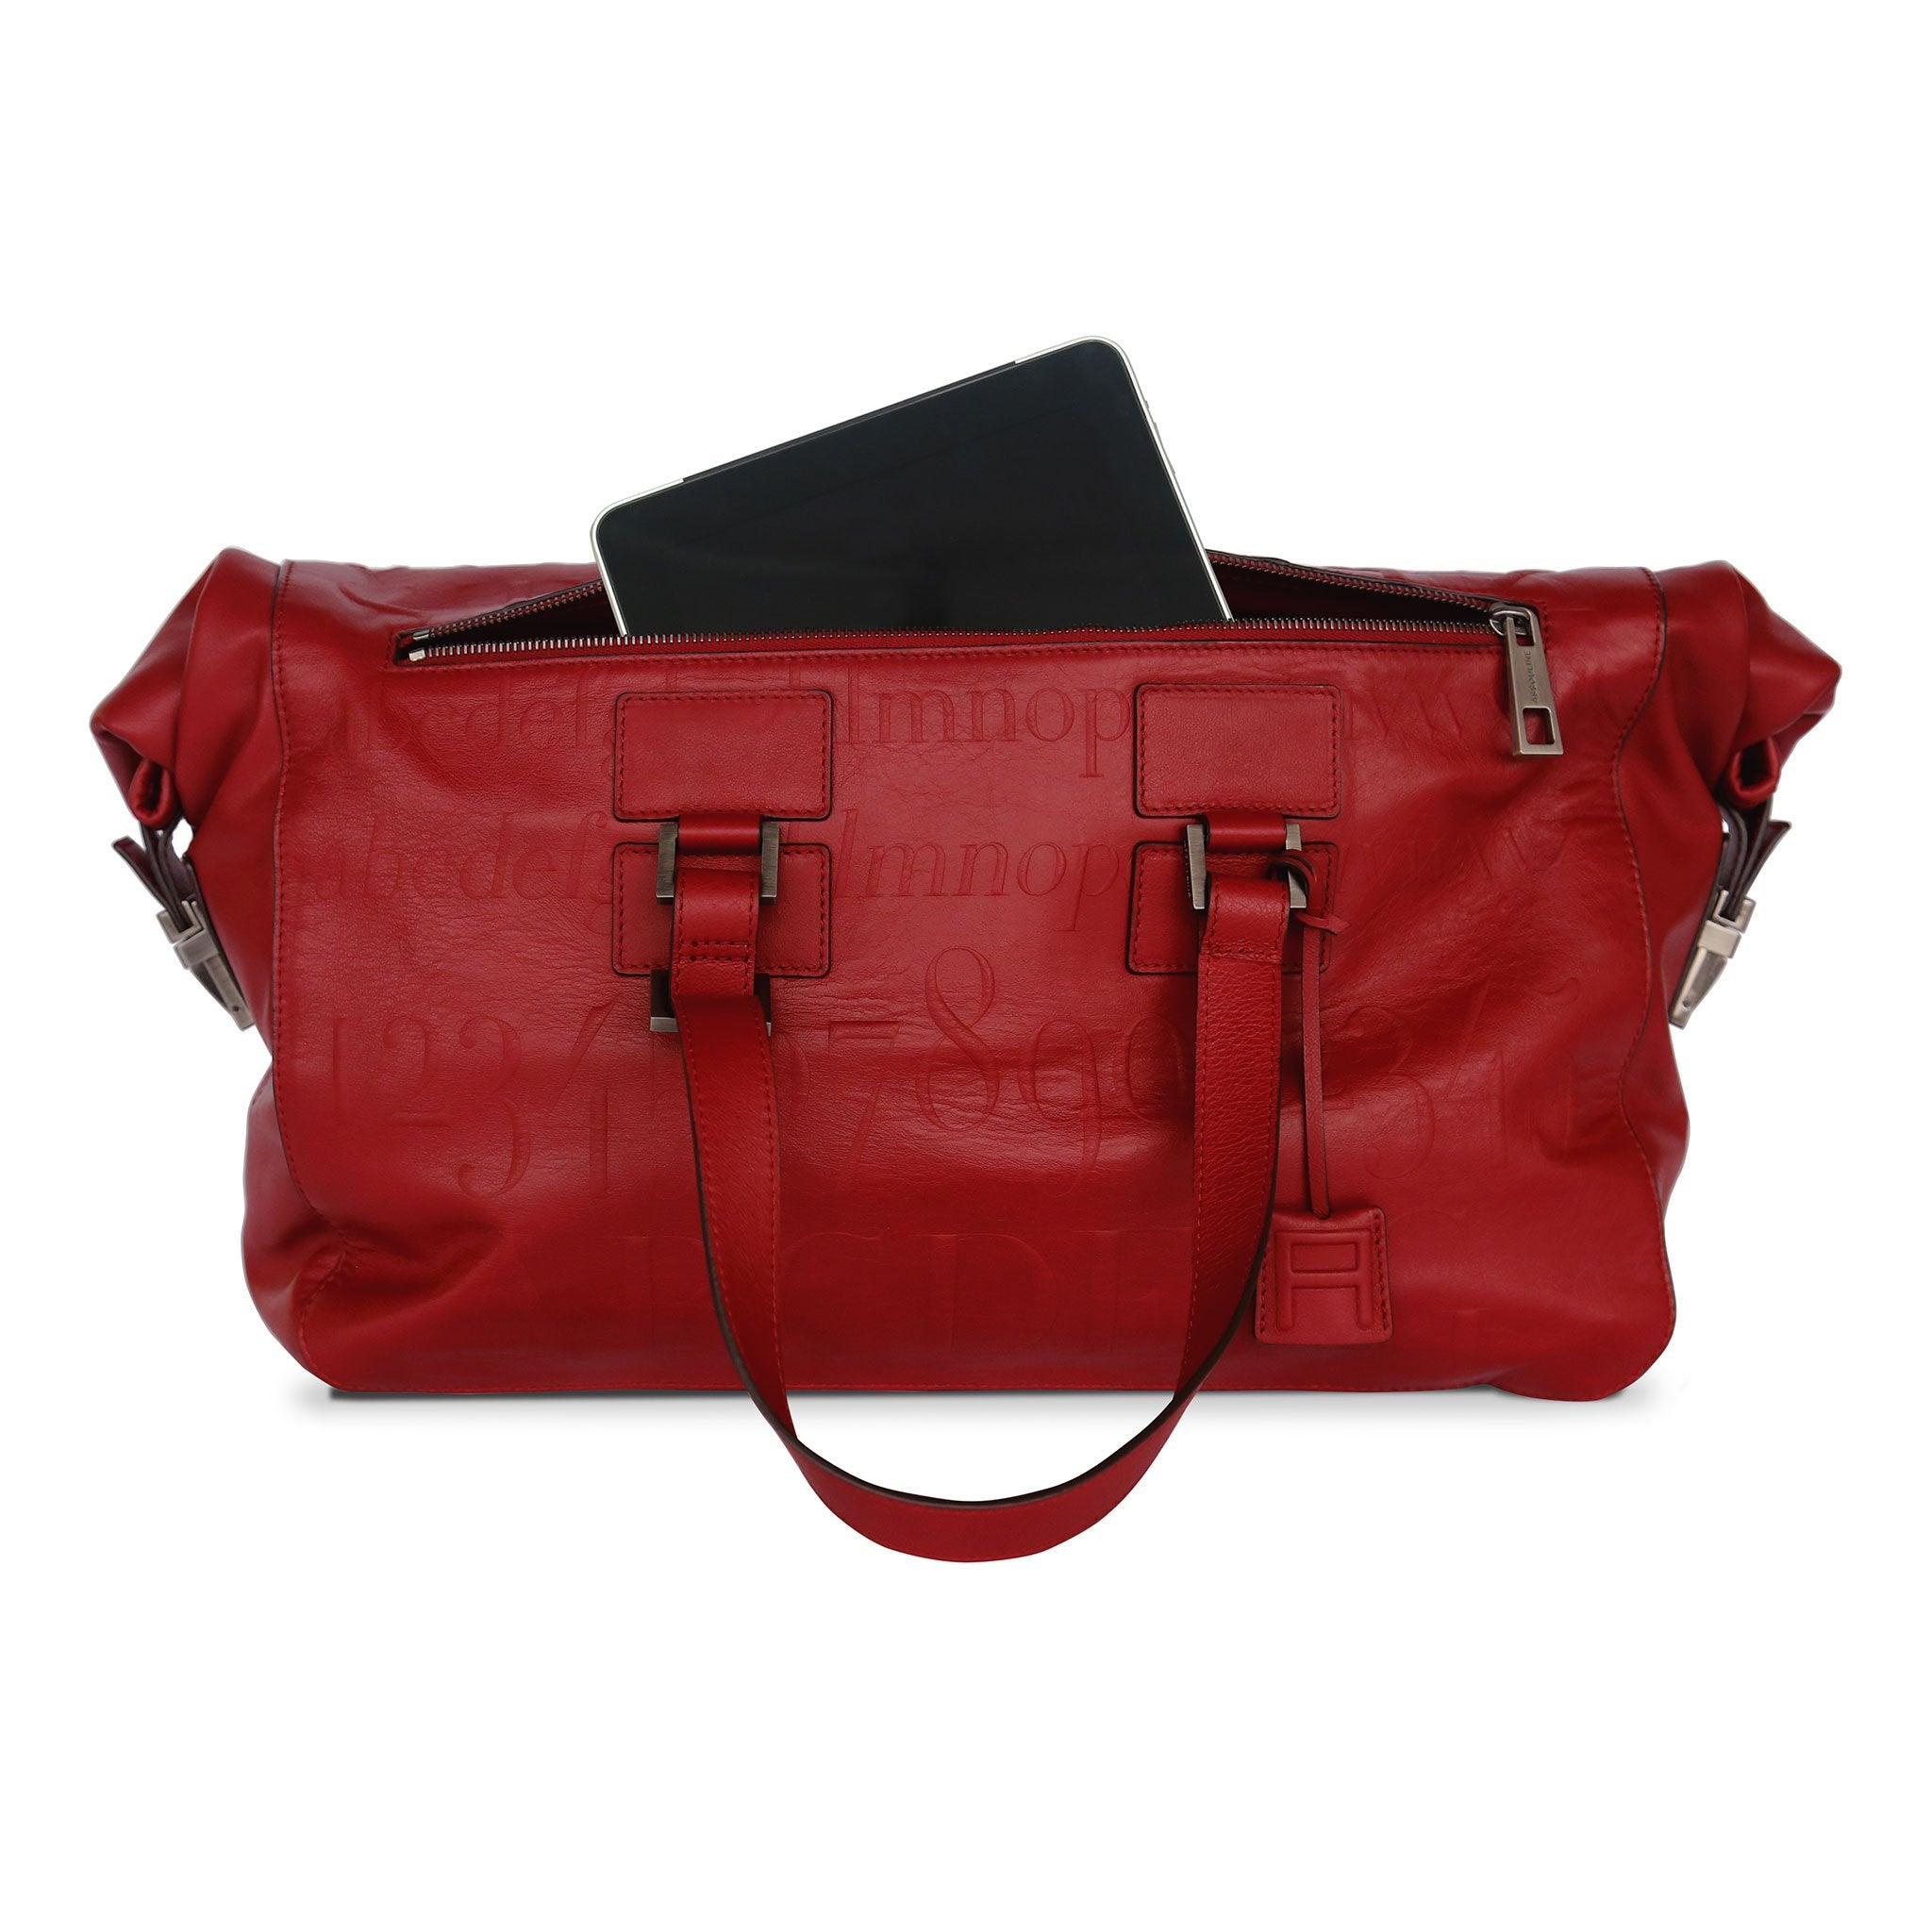 Didot Collection Red Bookbag - Assouline